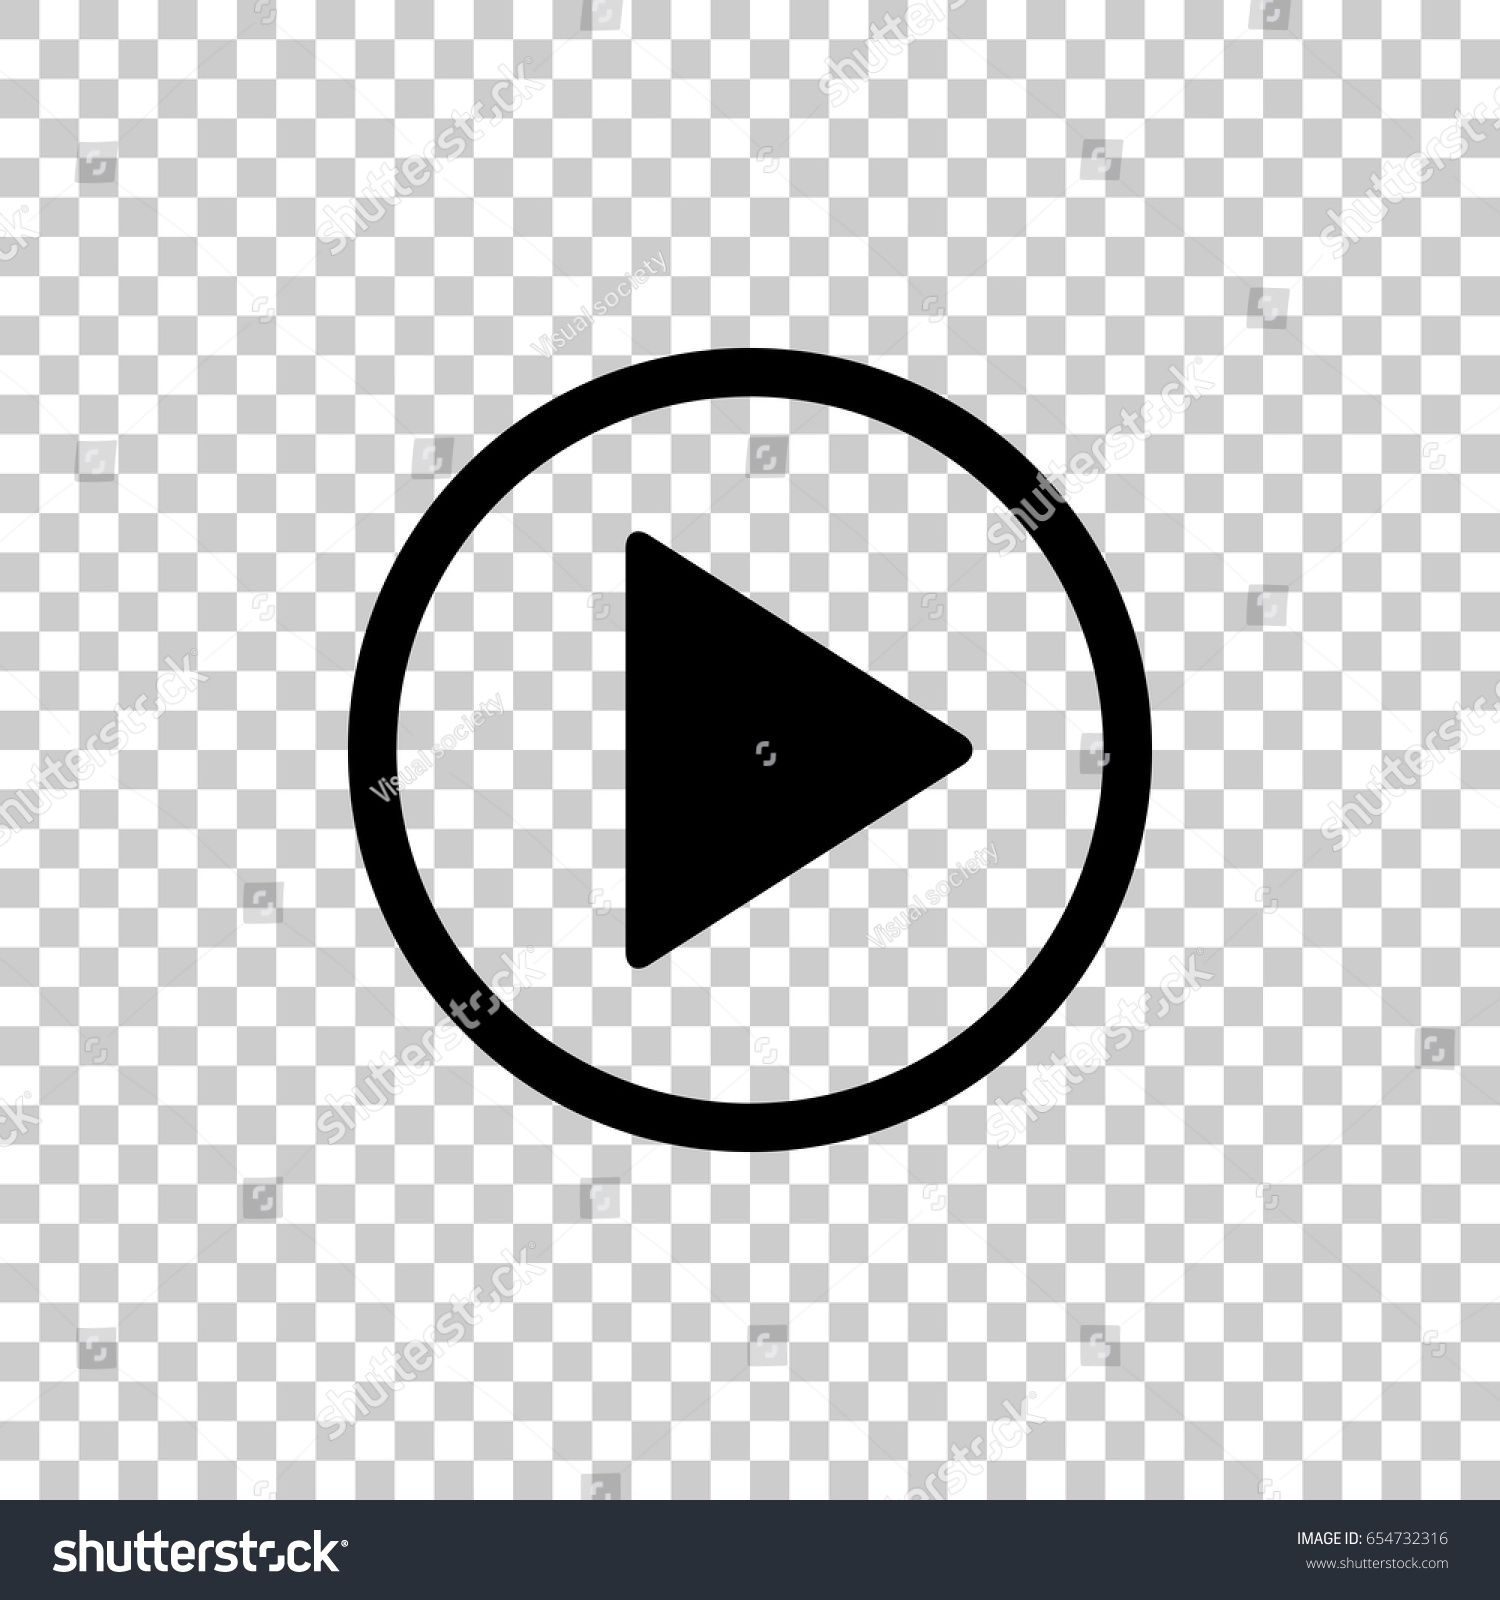 Play button icon isolated on transparent background. Black